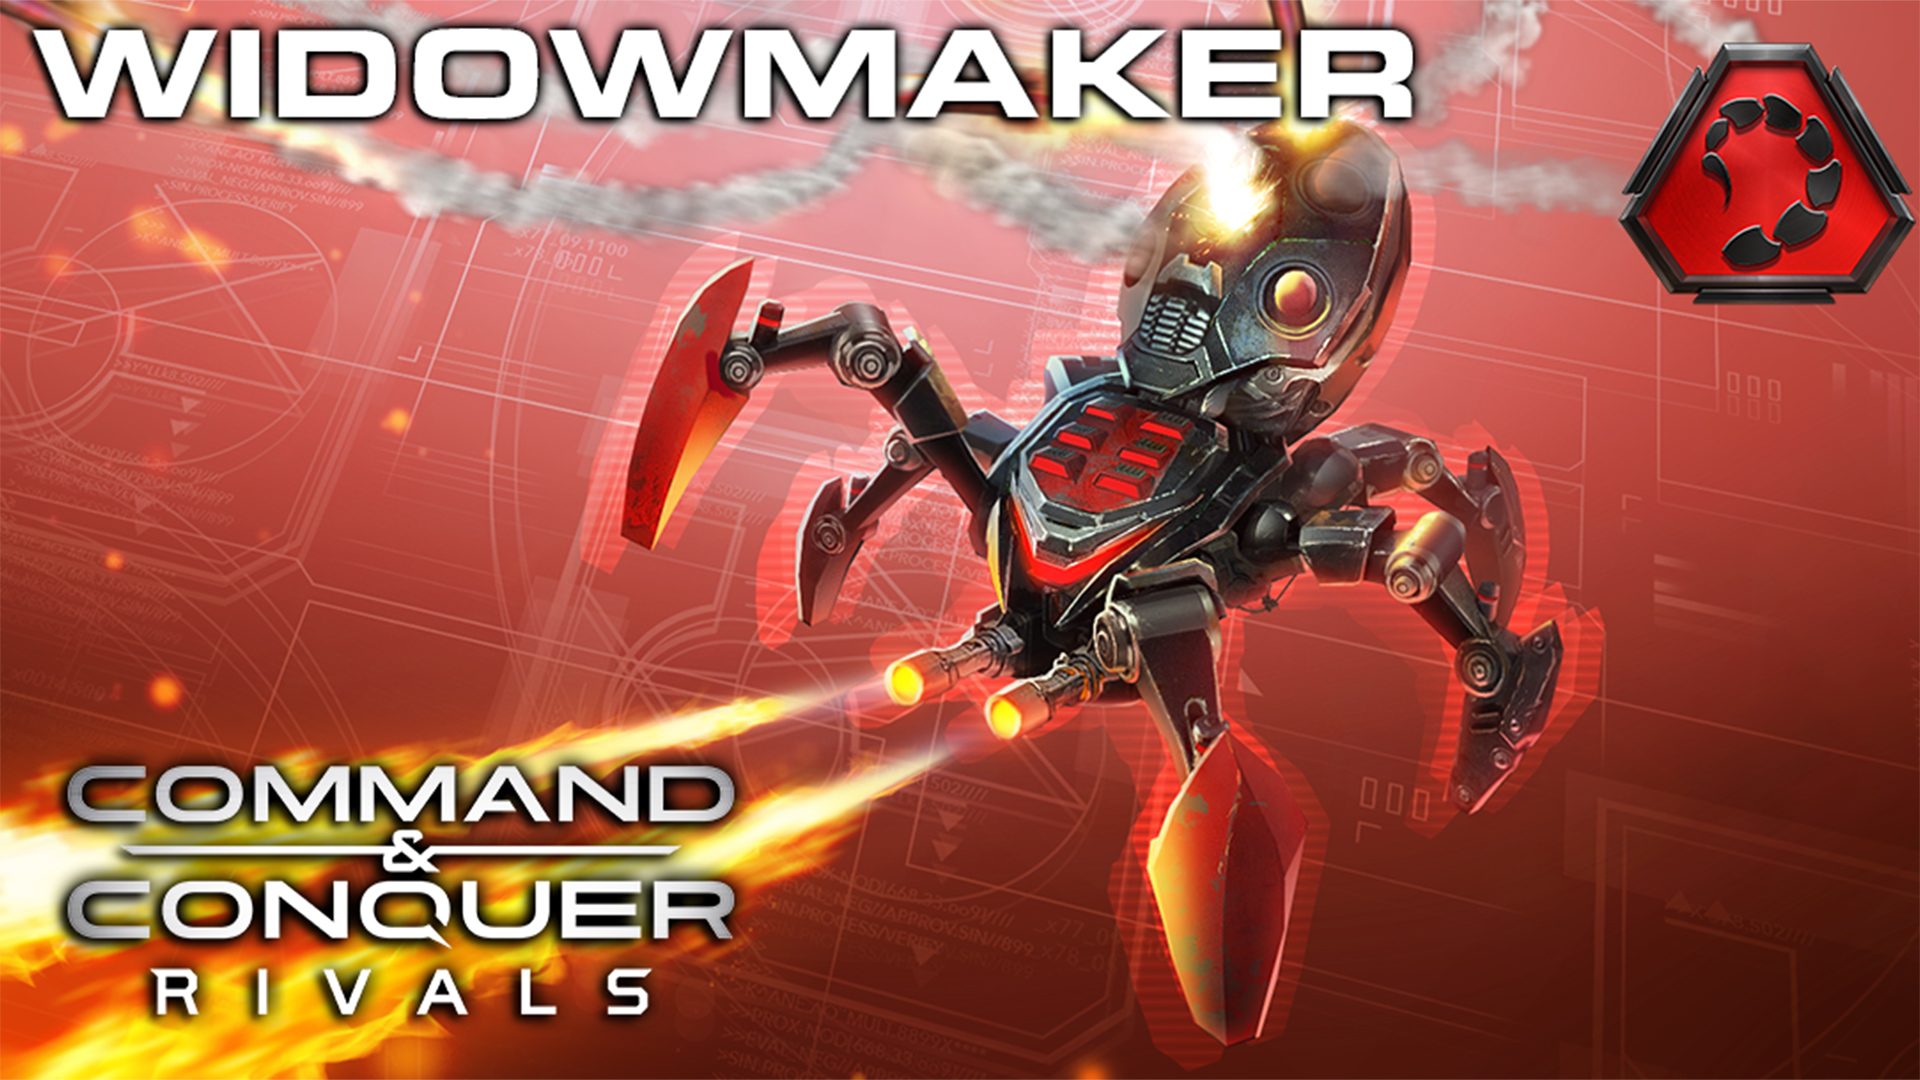 ea-blog-image-ccr-widowmaker-reveal-16x9